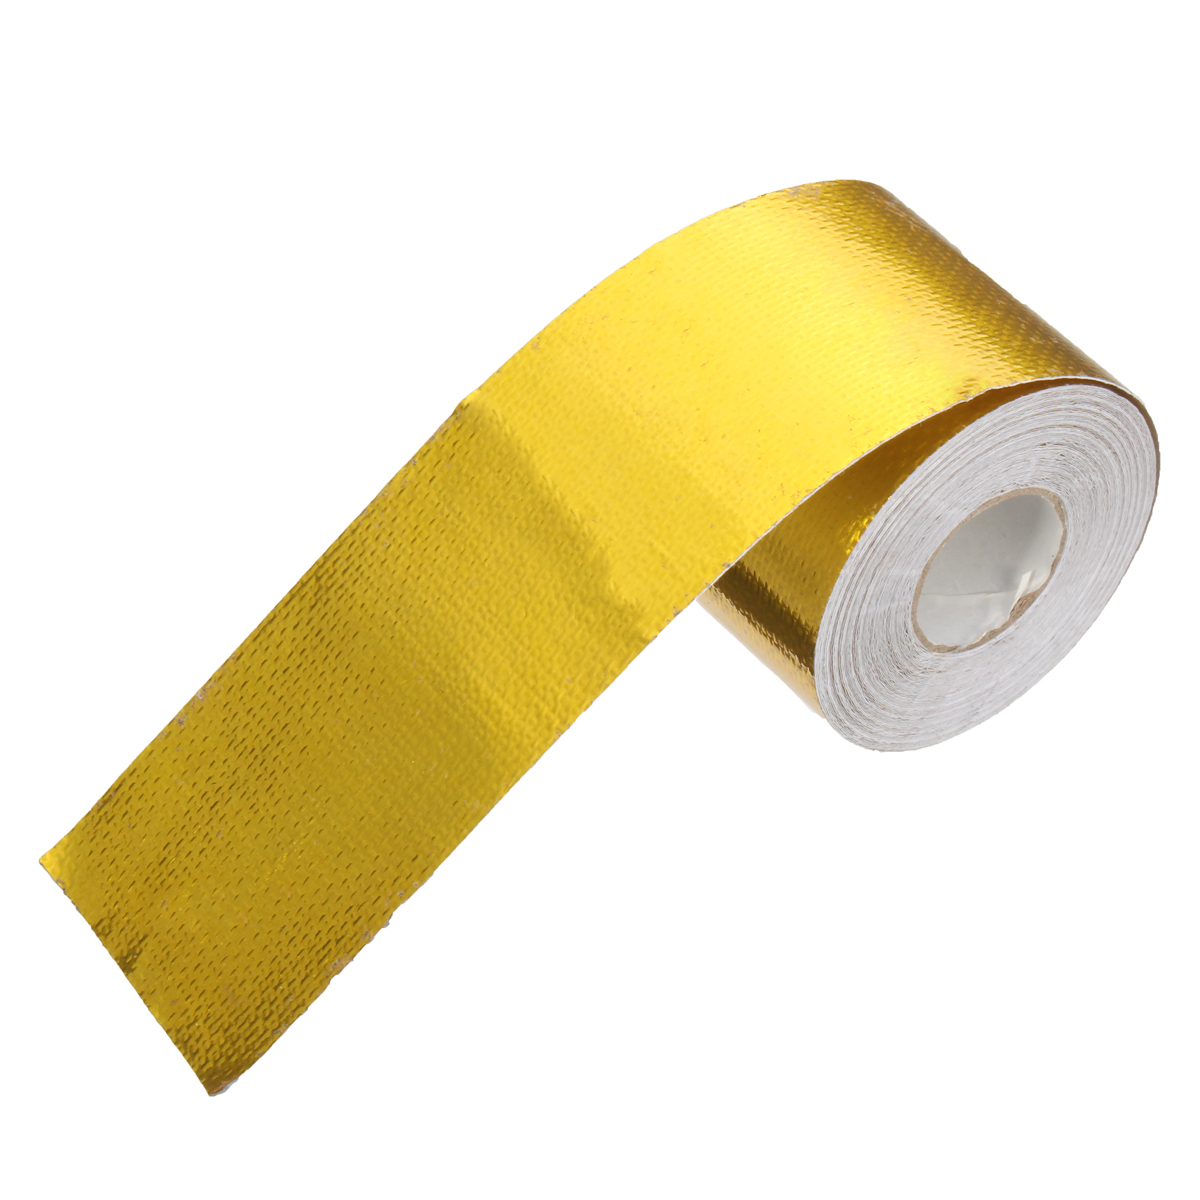 5x900CM Aluminium Foil Thermal Reflective Heat Shield Wrap Barrier Cooling Tape